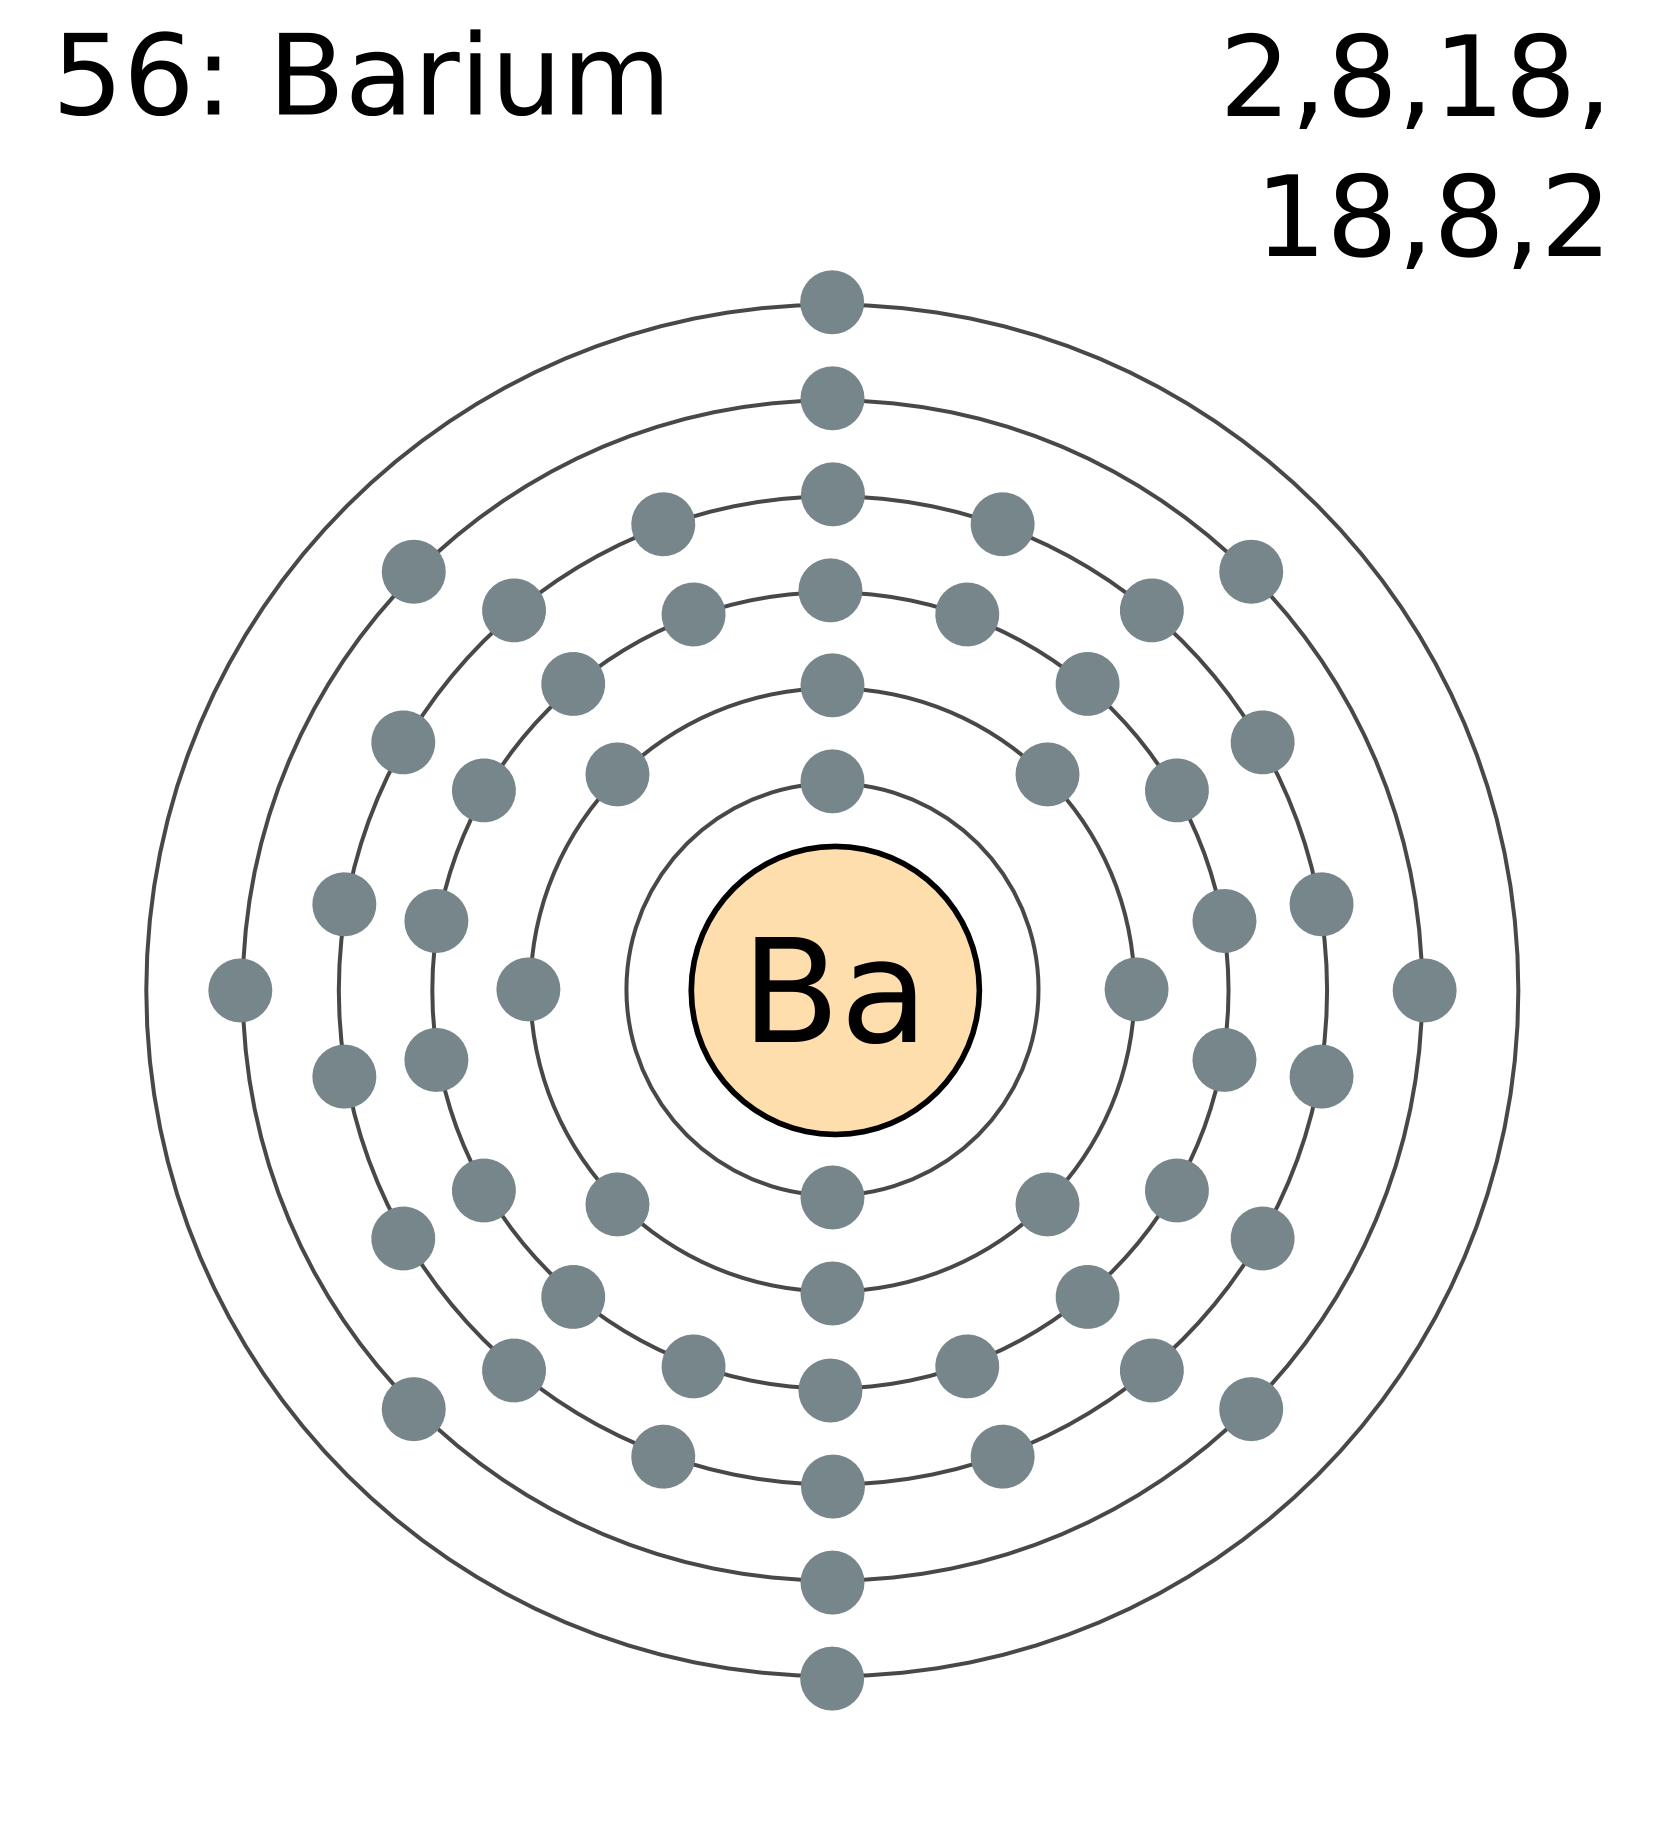 chemical properties of the element barium essay Barium essay - barium is a soft, heavy, silver-colored metal element this element does not have very many uses outside of the laboratory, but it combines easily with other chemicals to form.